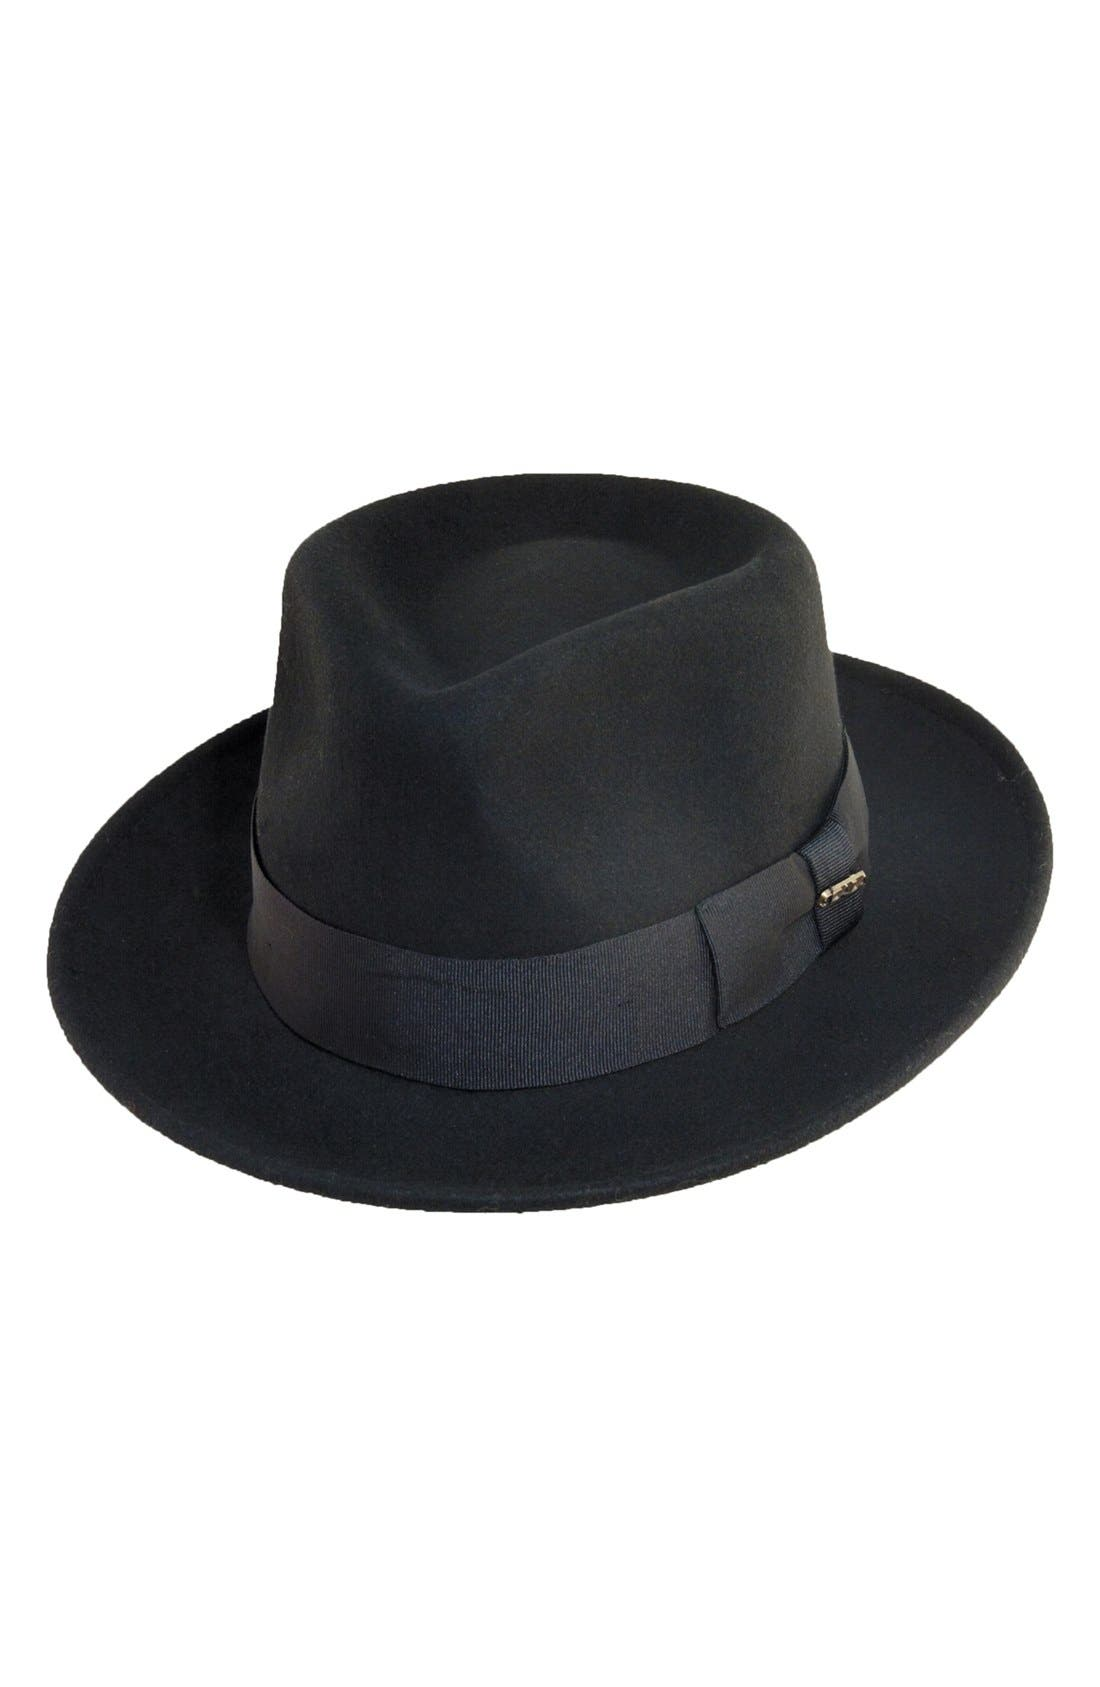 06fc4125 Fedora Hats for Men | Nordstrom